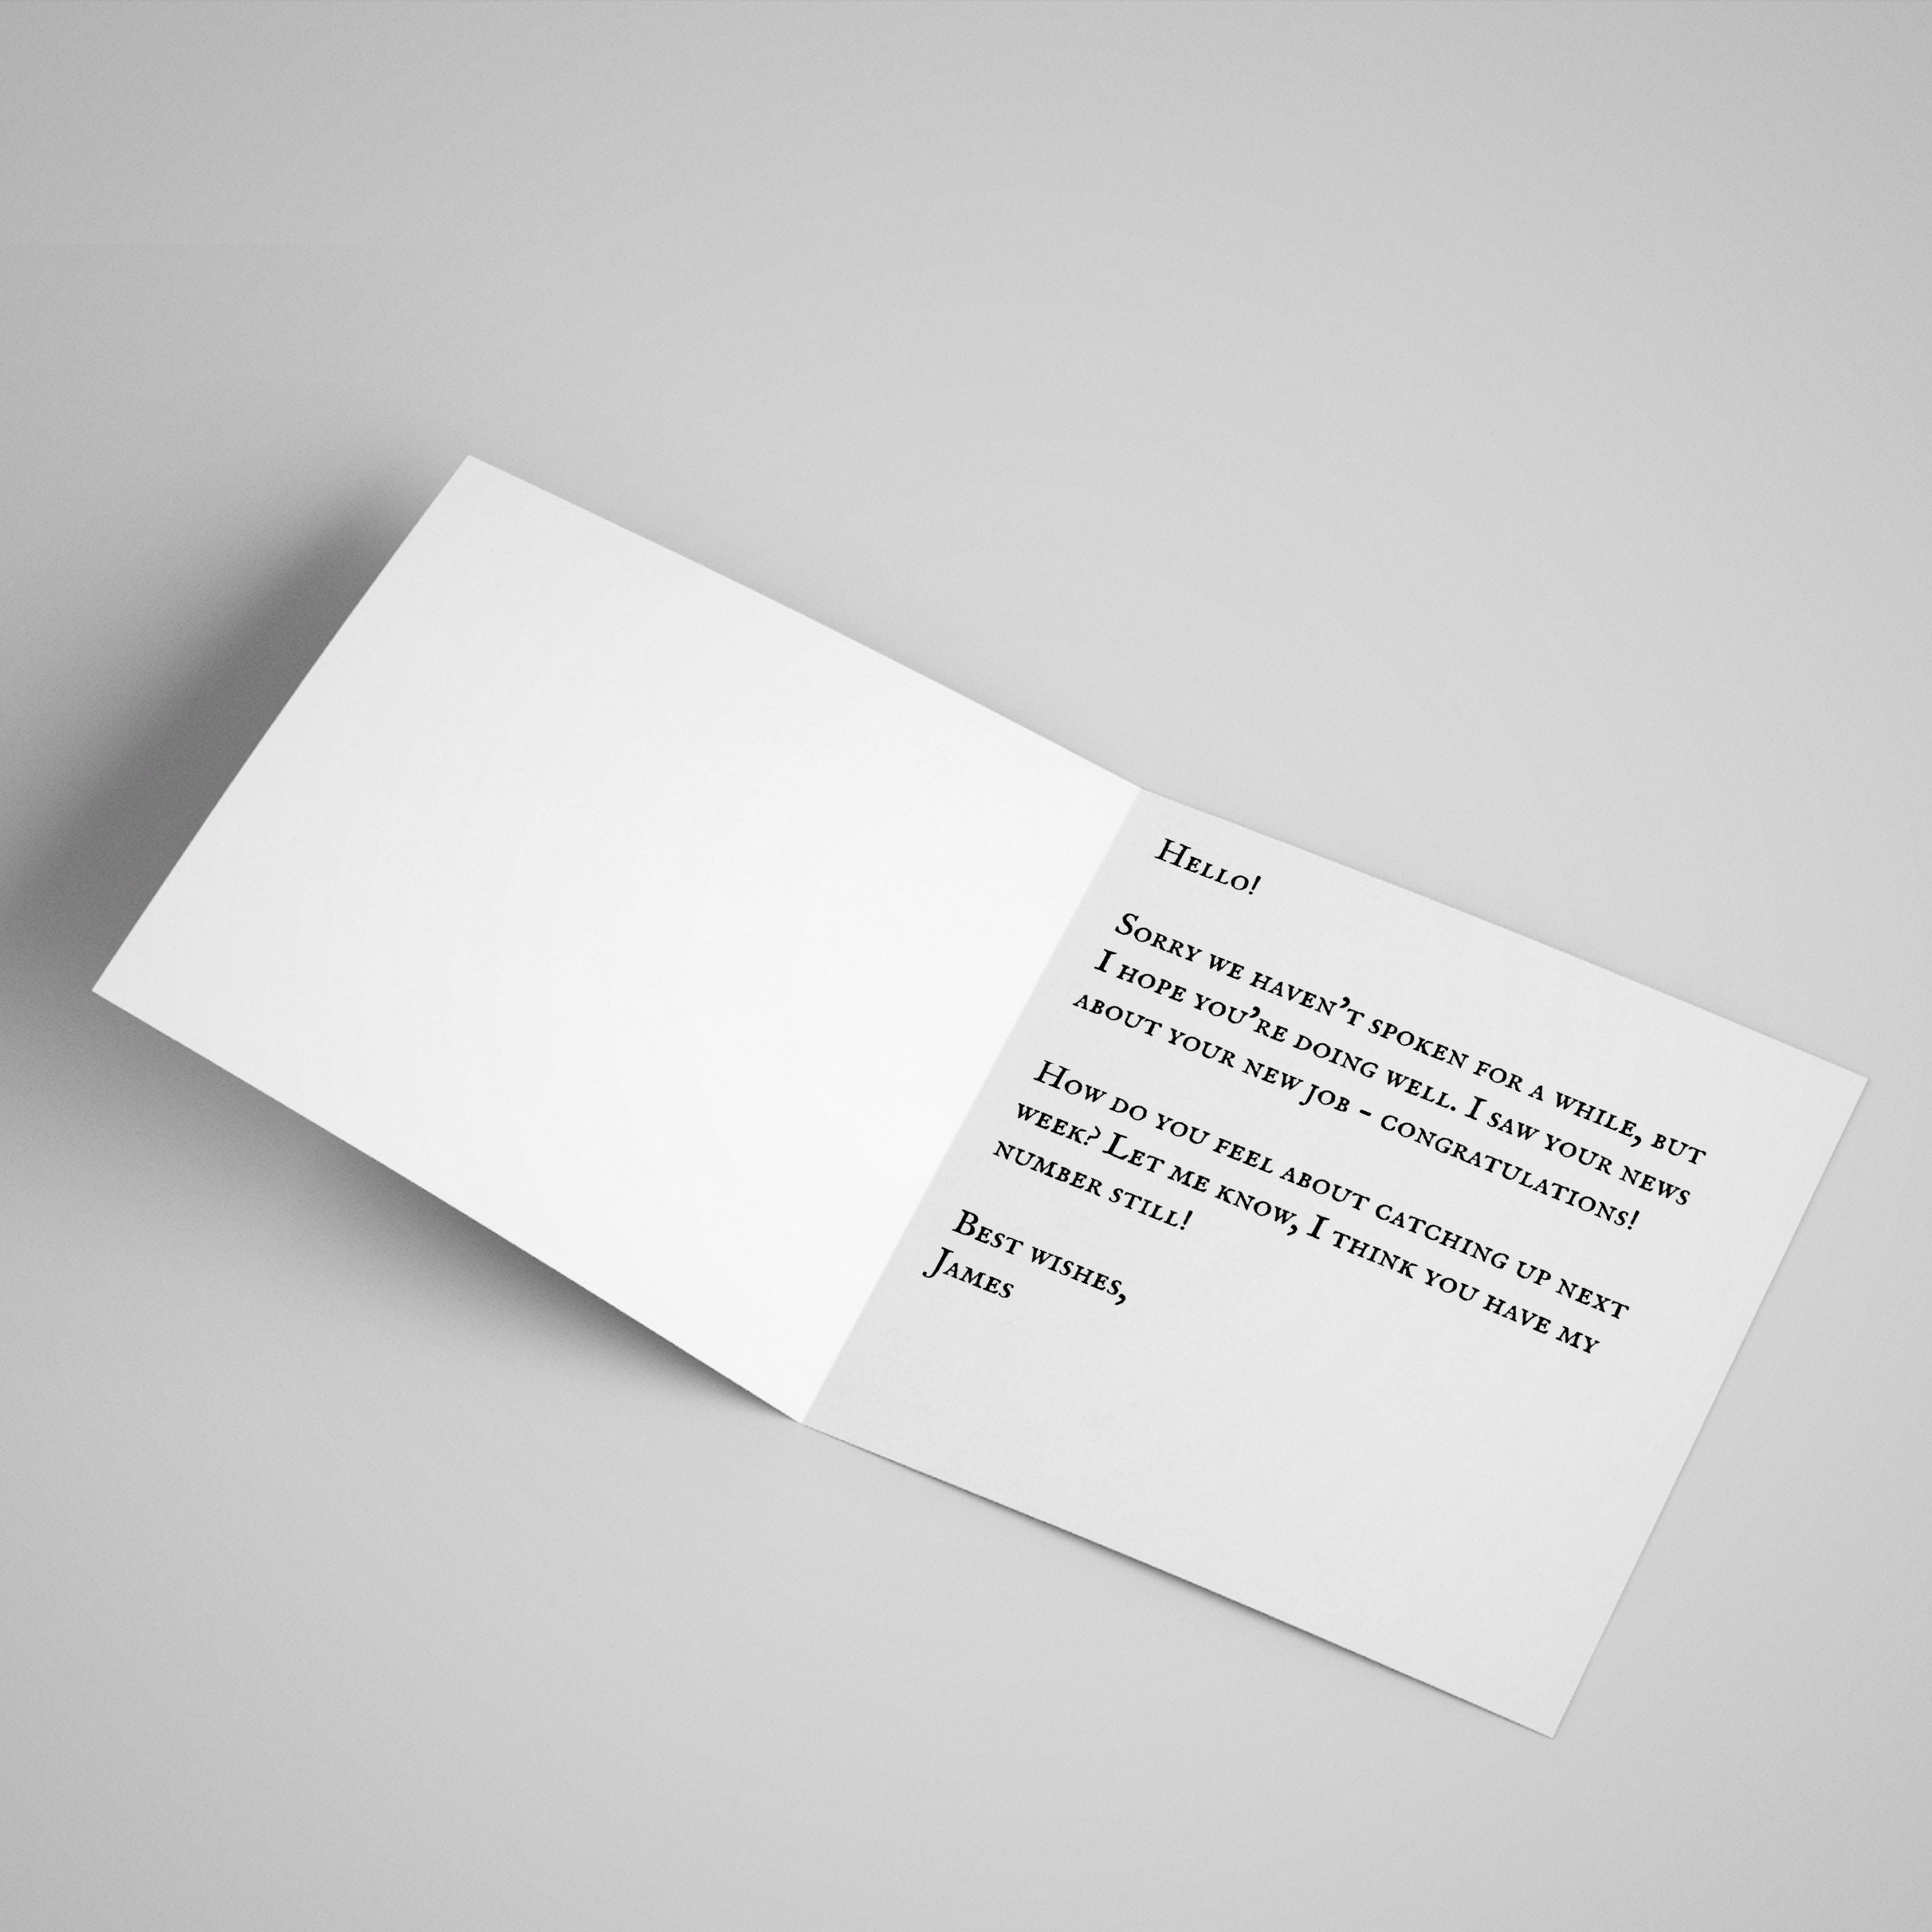 Open card with a custom printed message as specified by the customer - can be sent directly to recipient